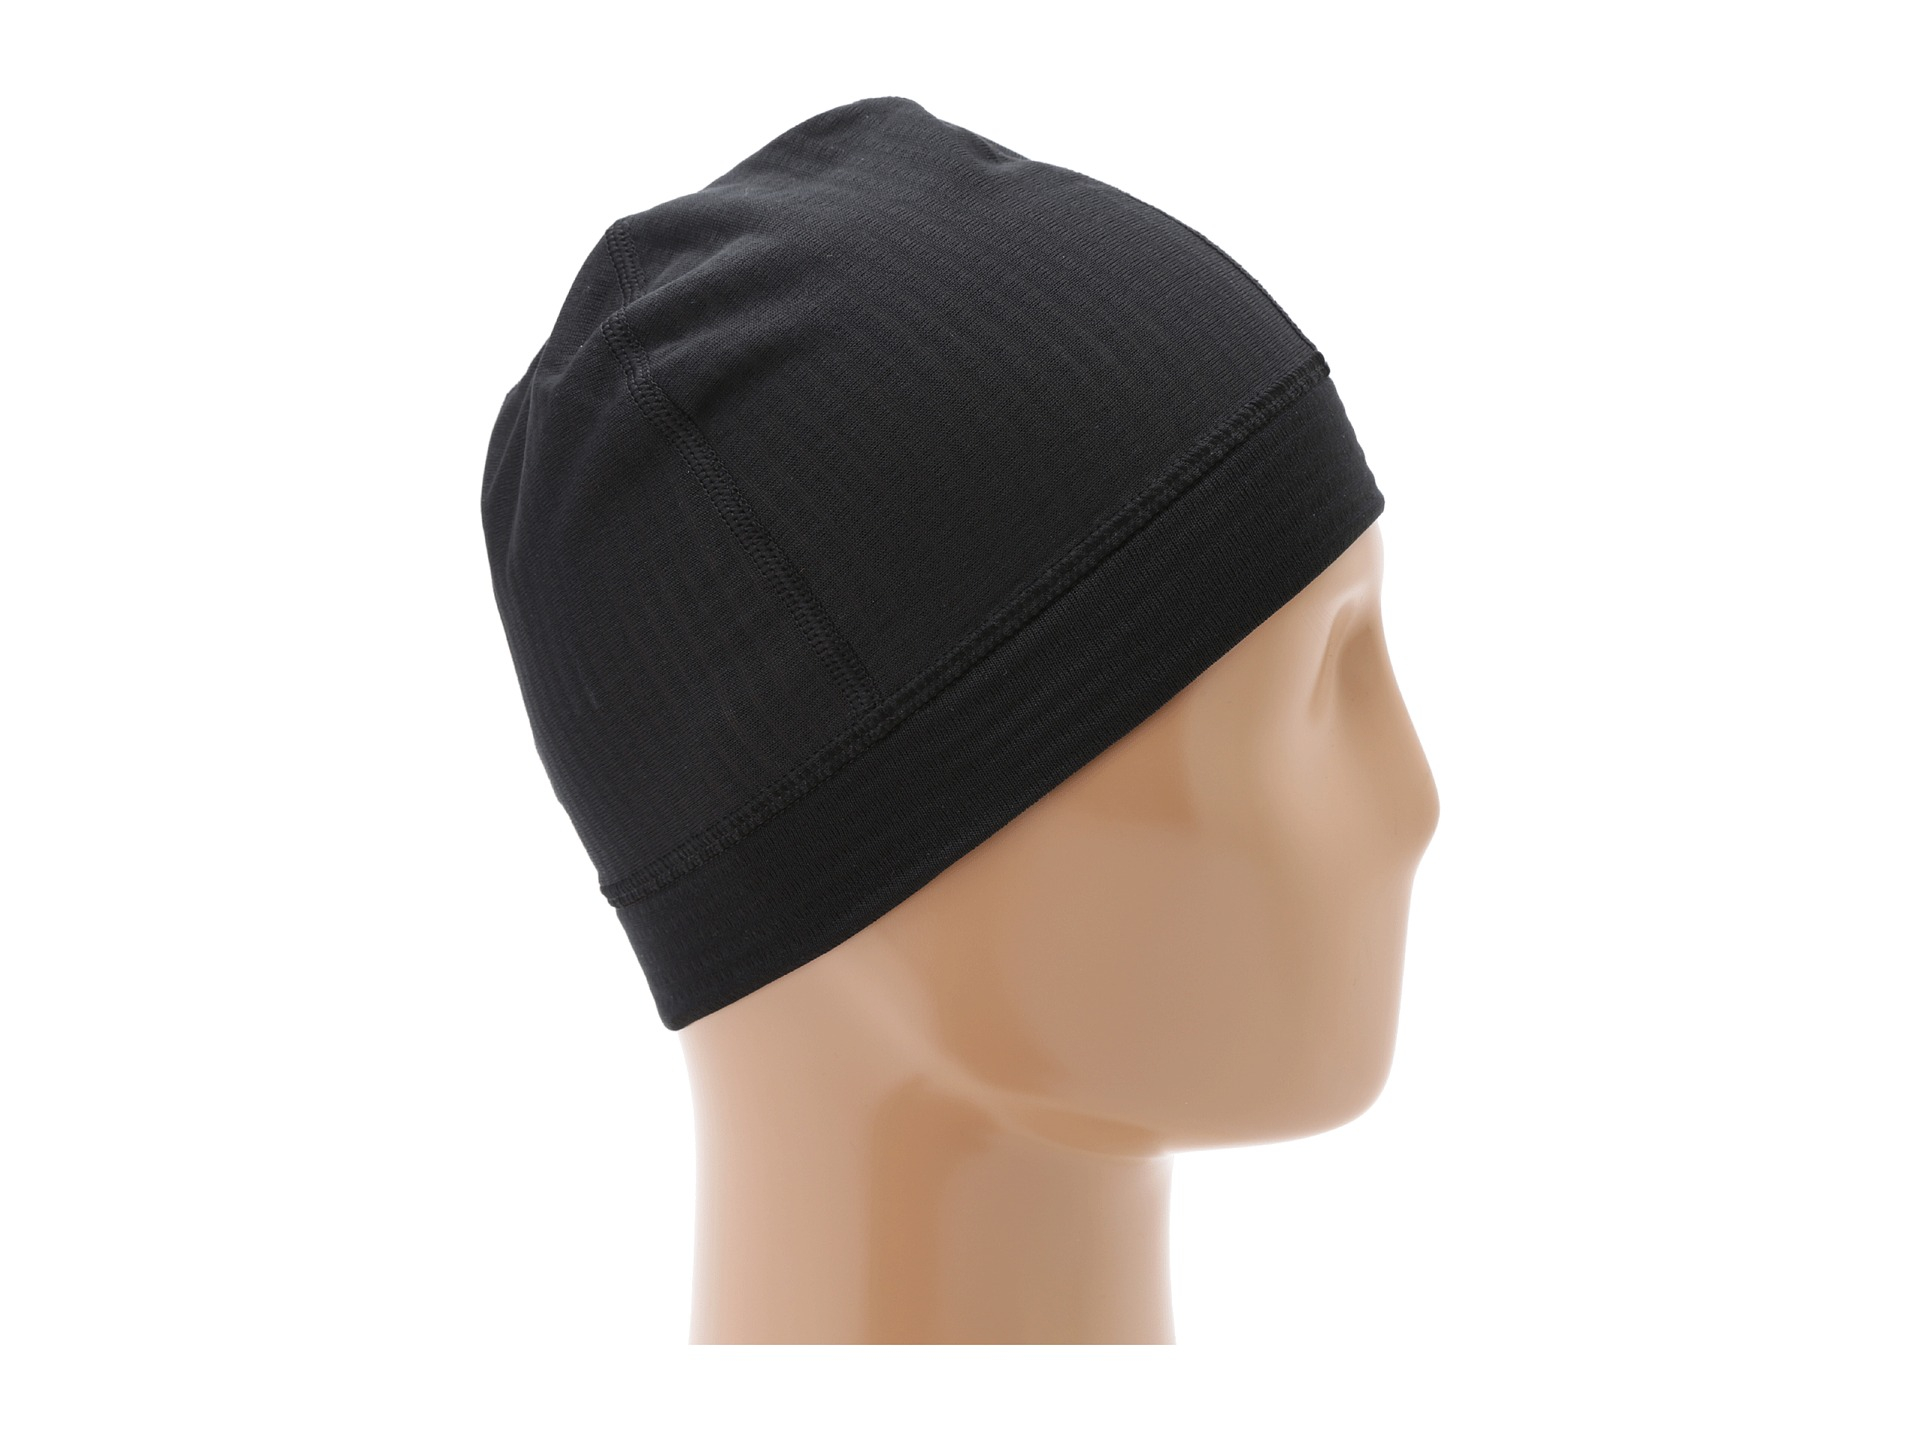 7d4fd61158f6b Patagonia Capilene 4 Expedition Weight Beanie in Black - Lyst